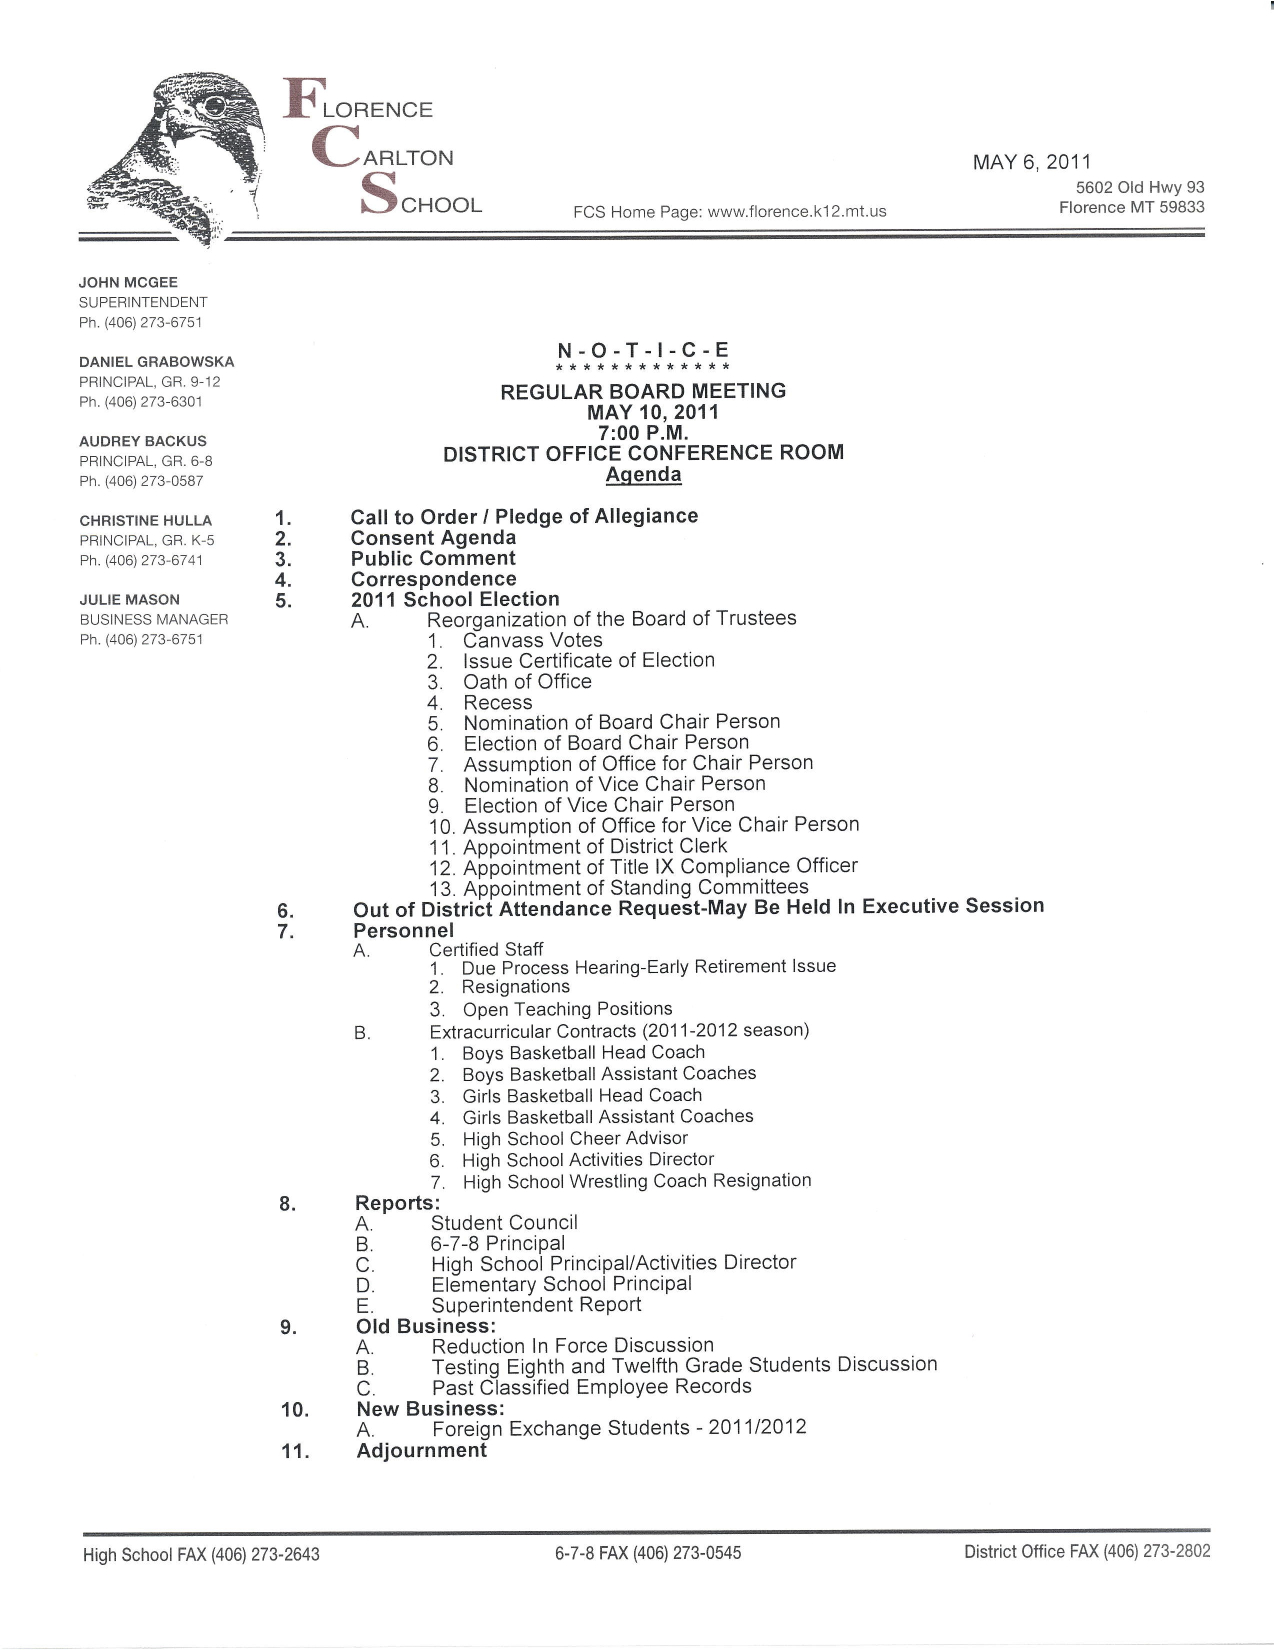 Upcoming Board Meeting Agenda for May 10th, 2011